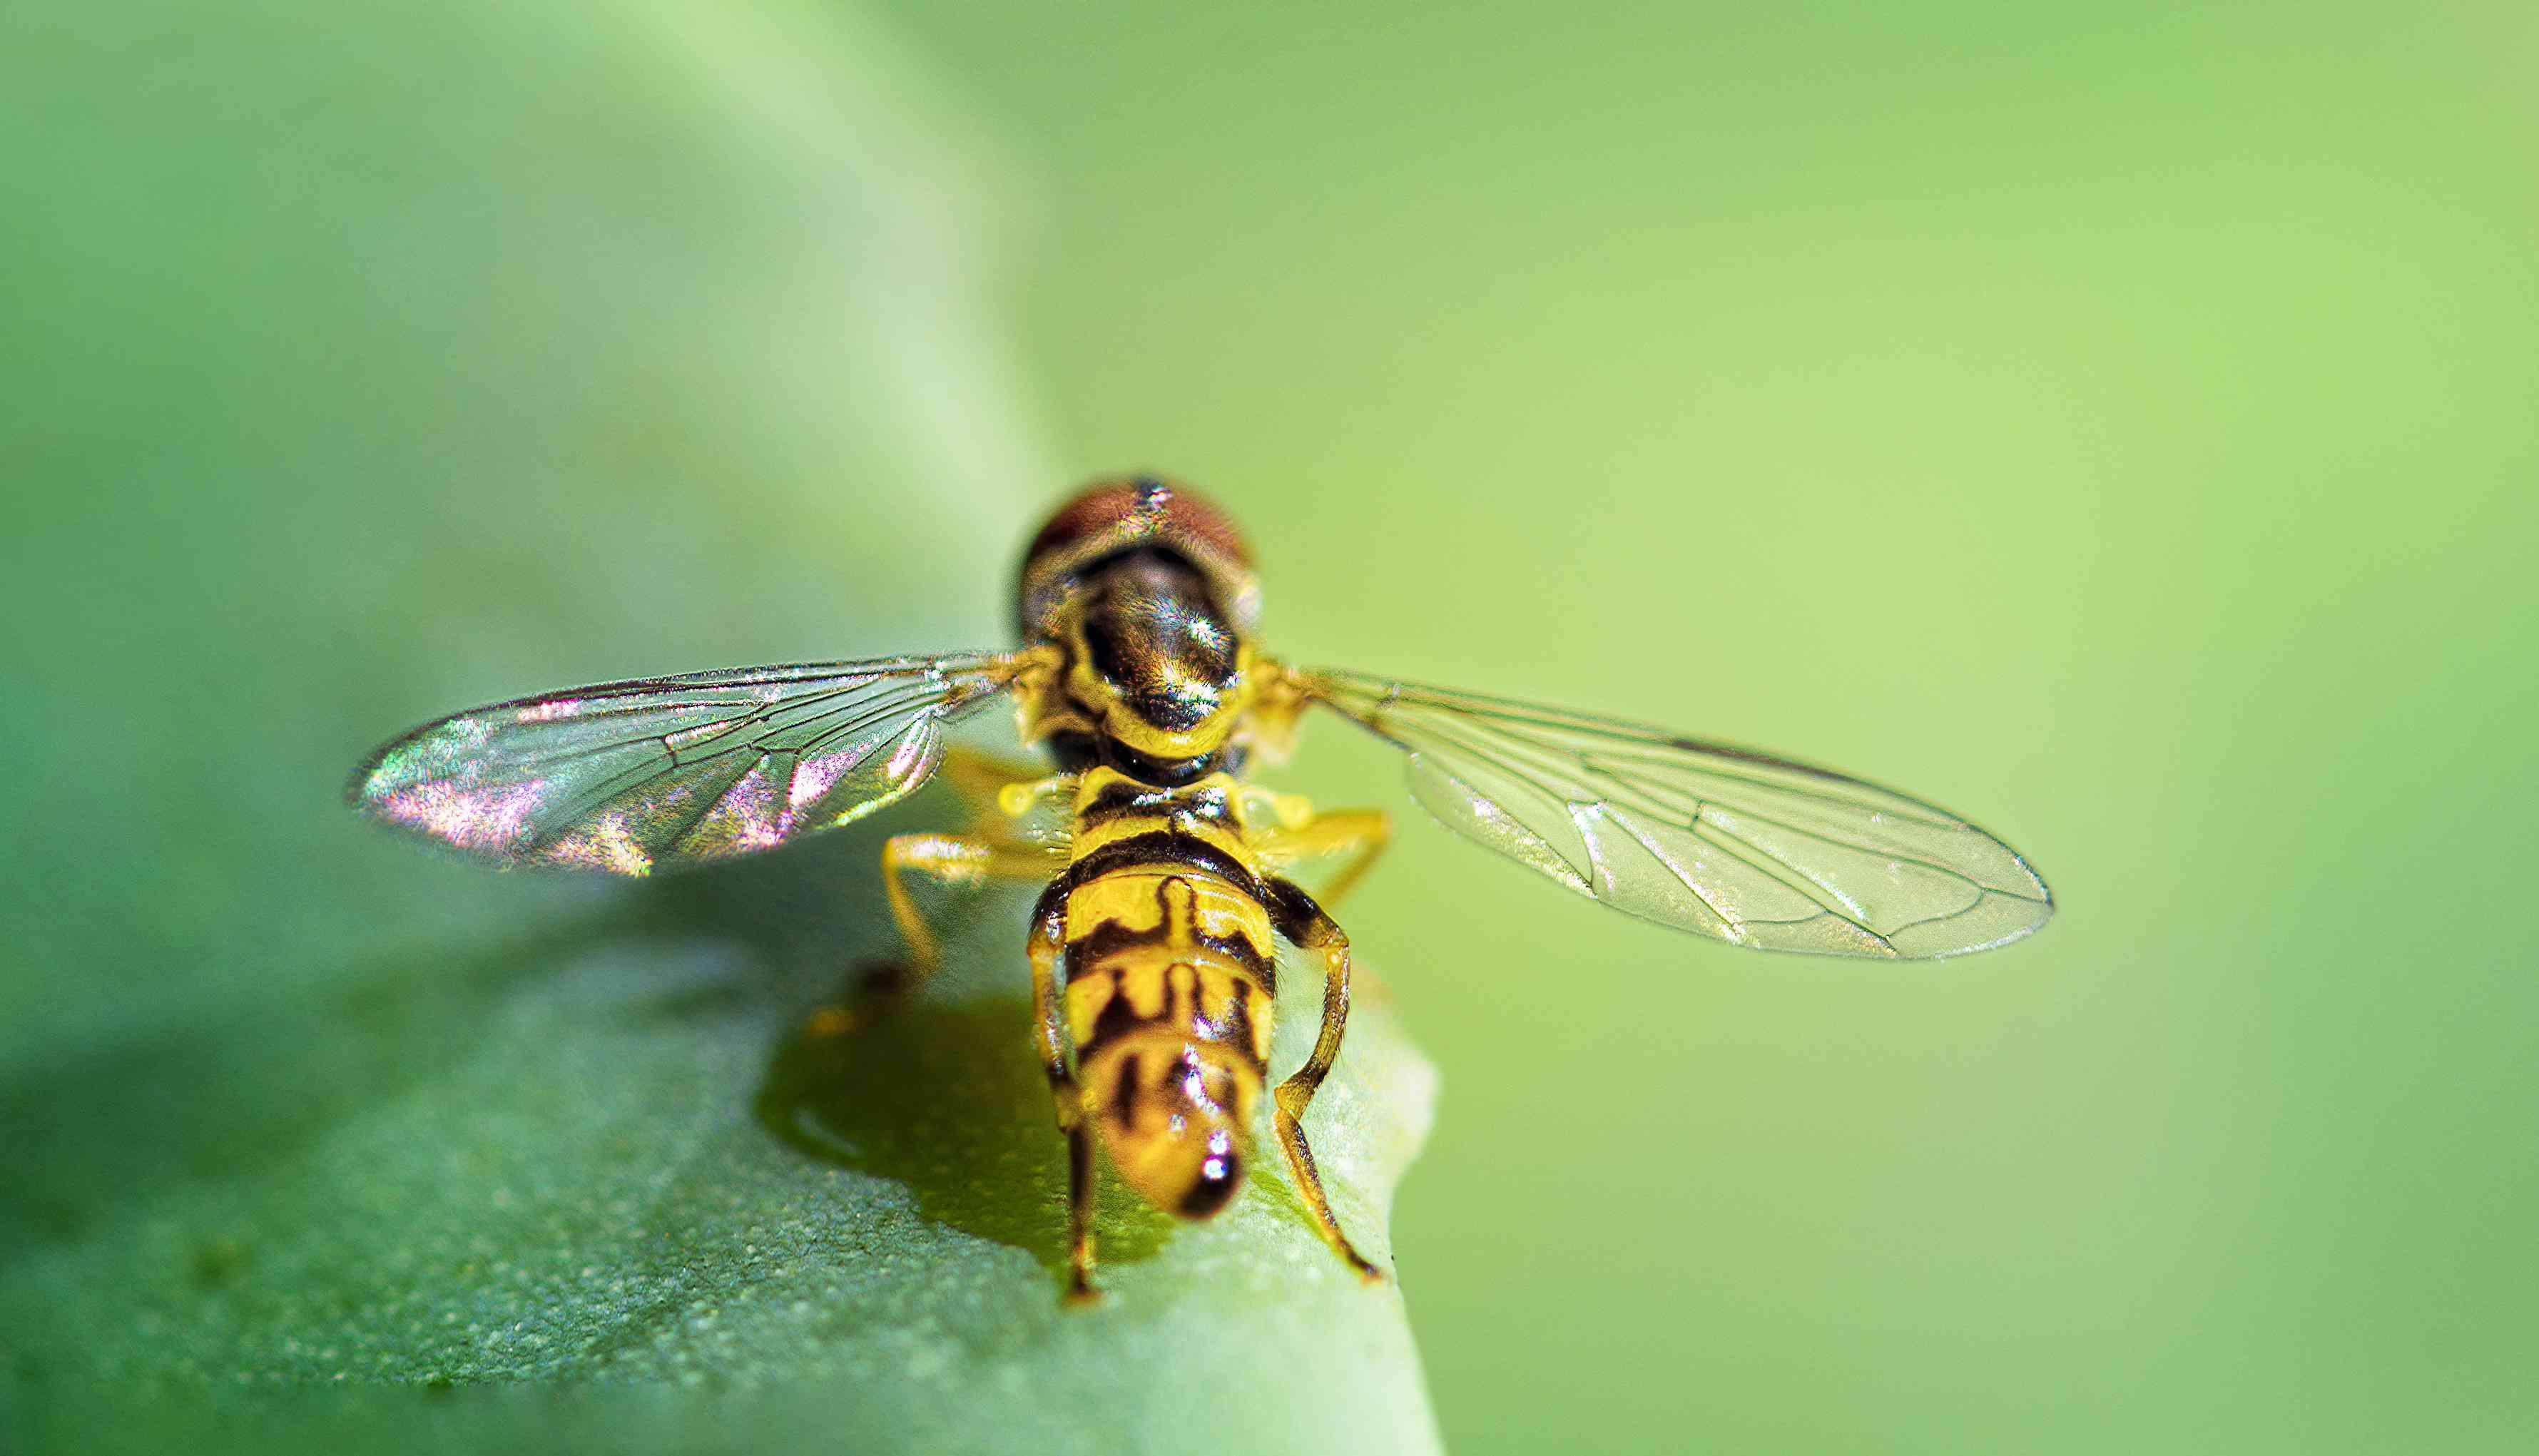 The hoverfly has one pair of wings only, unlike bees and wasps